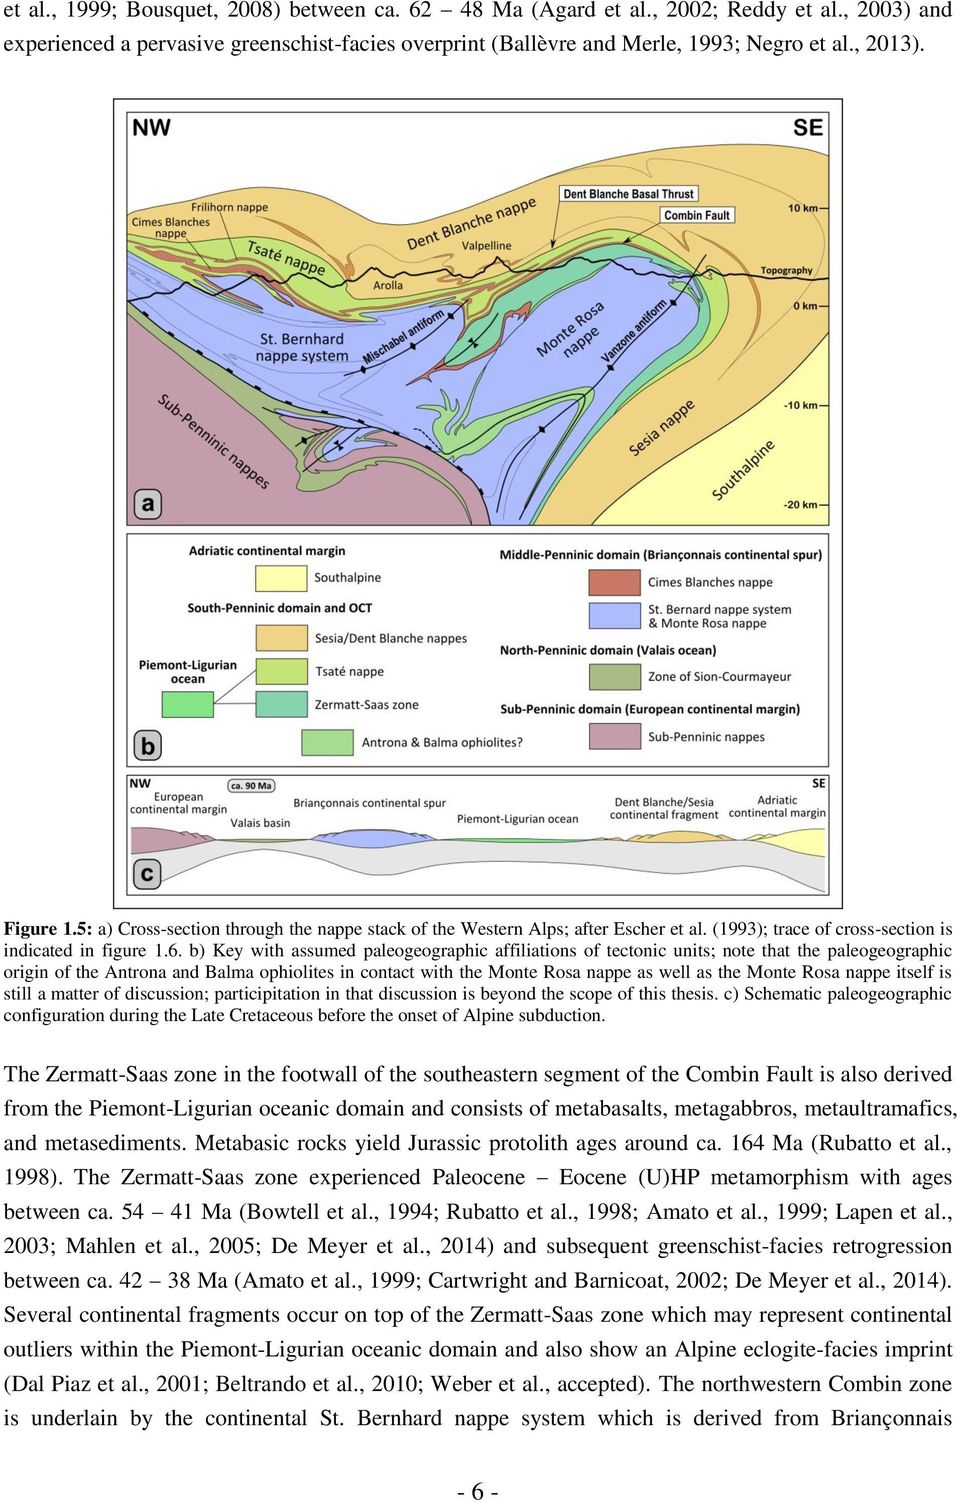 b) Key with assumed paleogeographic affiliations of tectonic units; note that the paleogeographic origin of the Antrona and Balma ophiolites in contact with the Monte Rosa nappe as well as the Monte